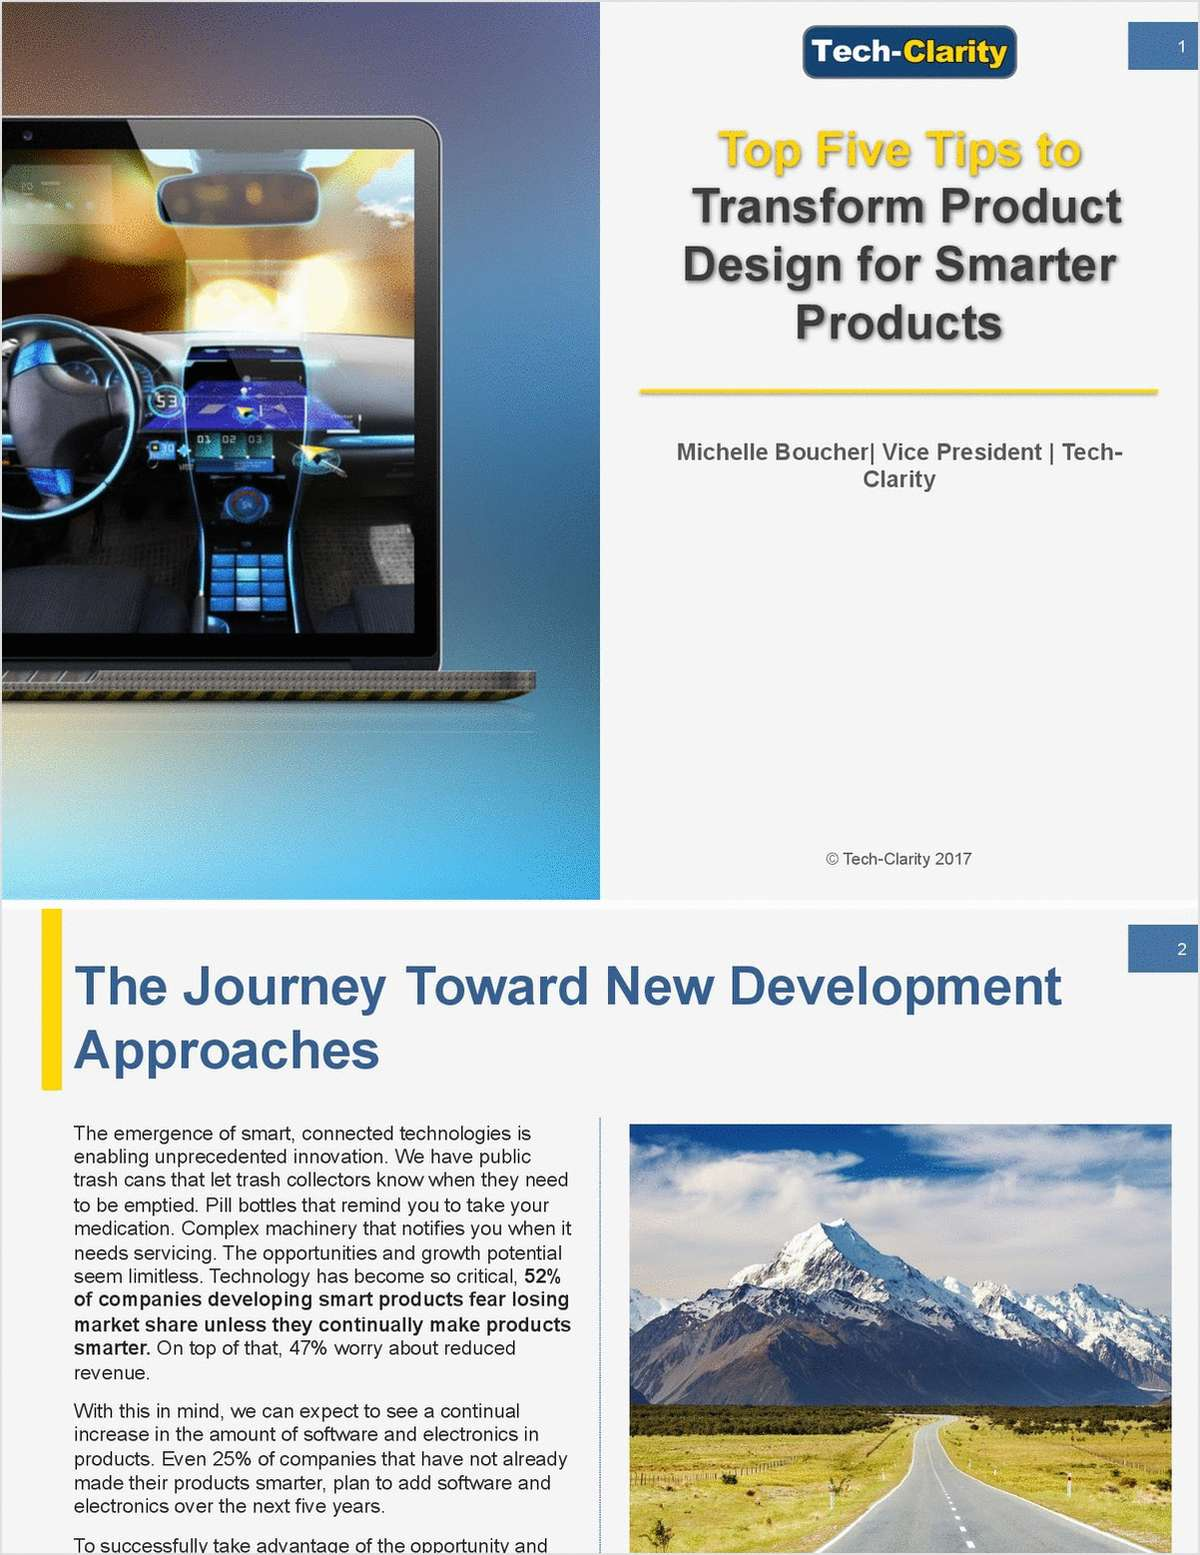 Transform Product Design and Create Smarter Products